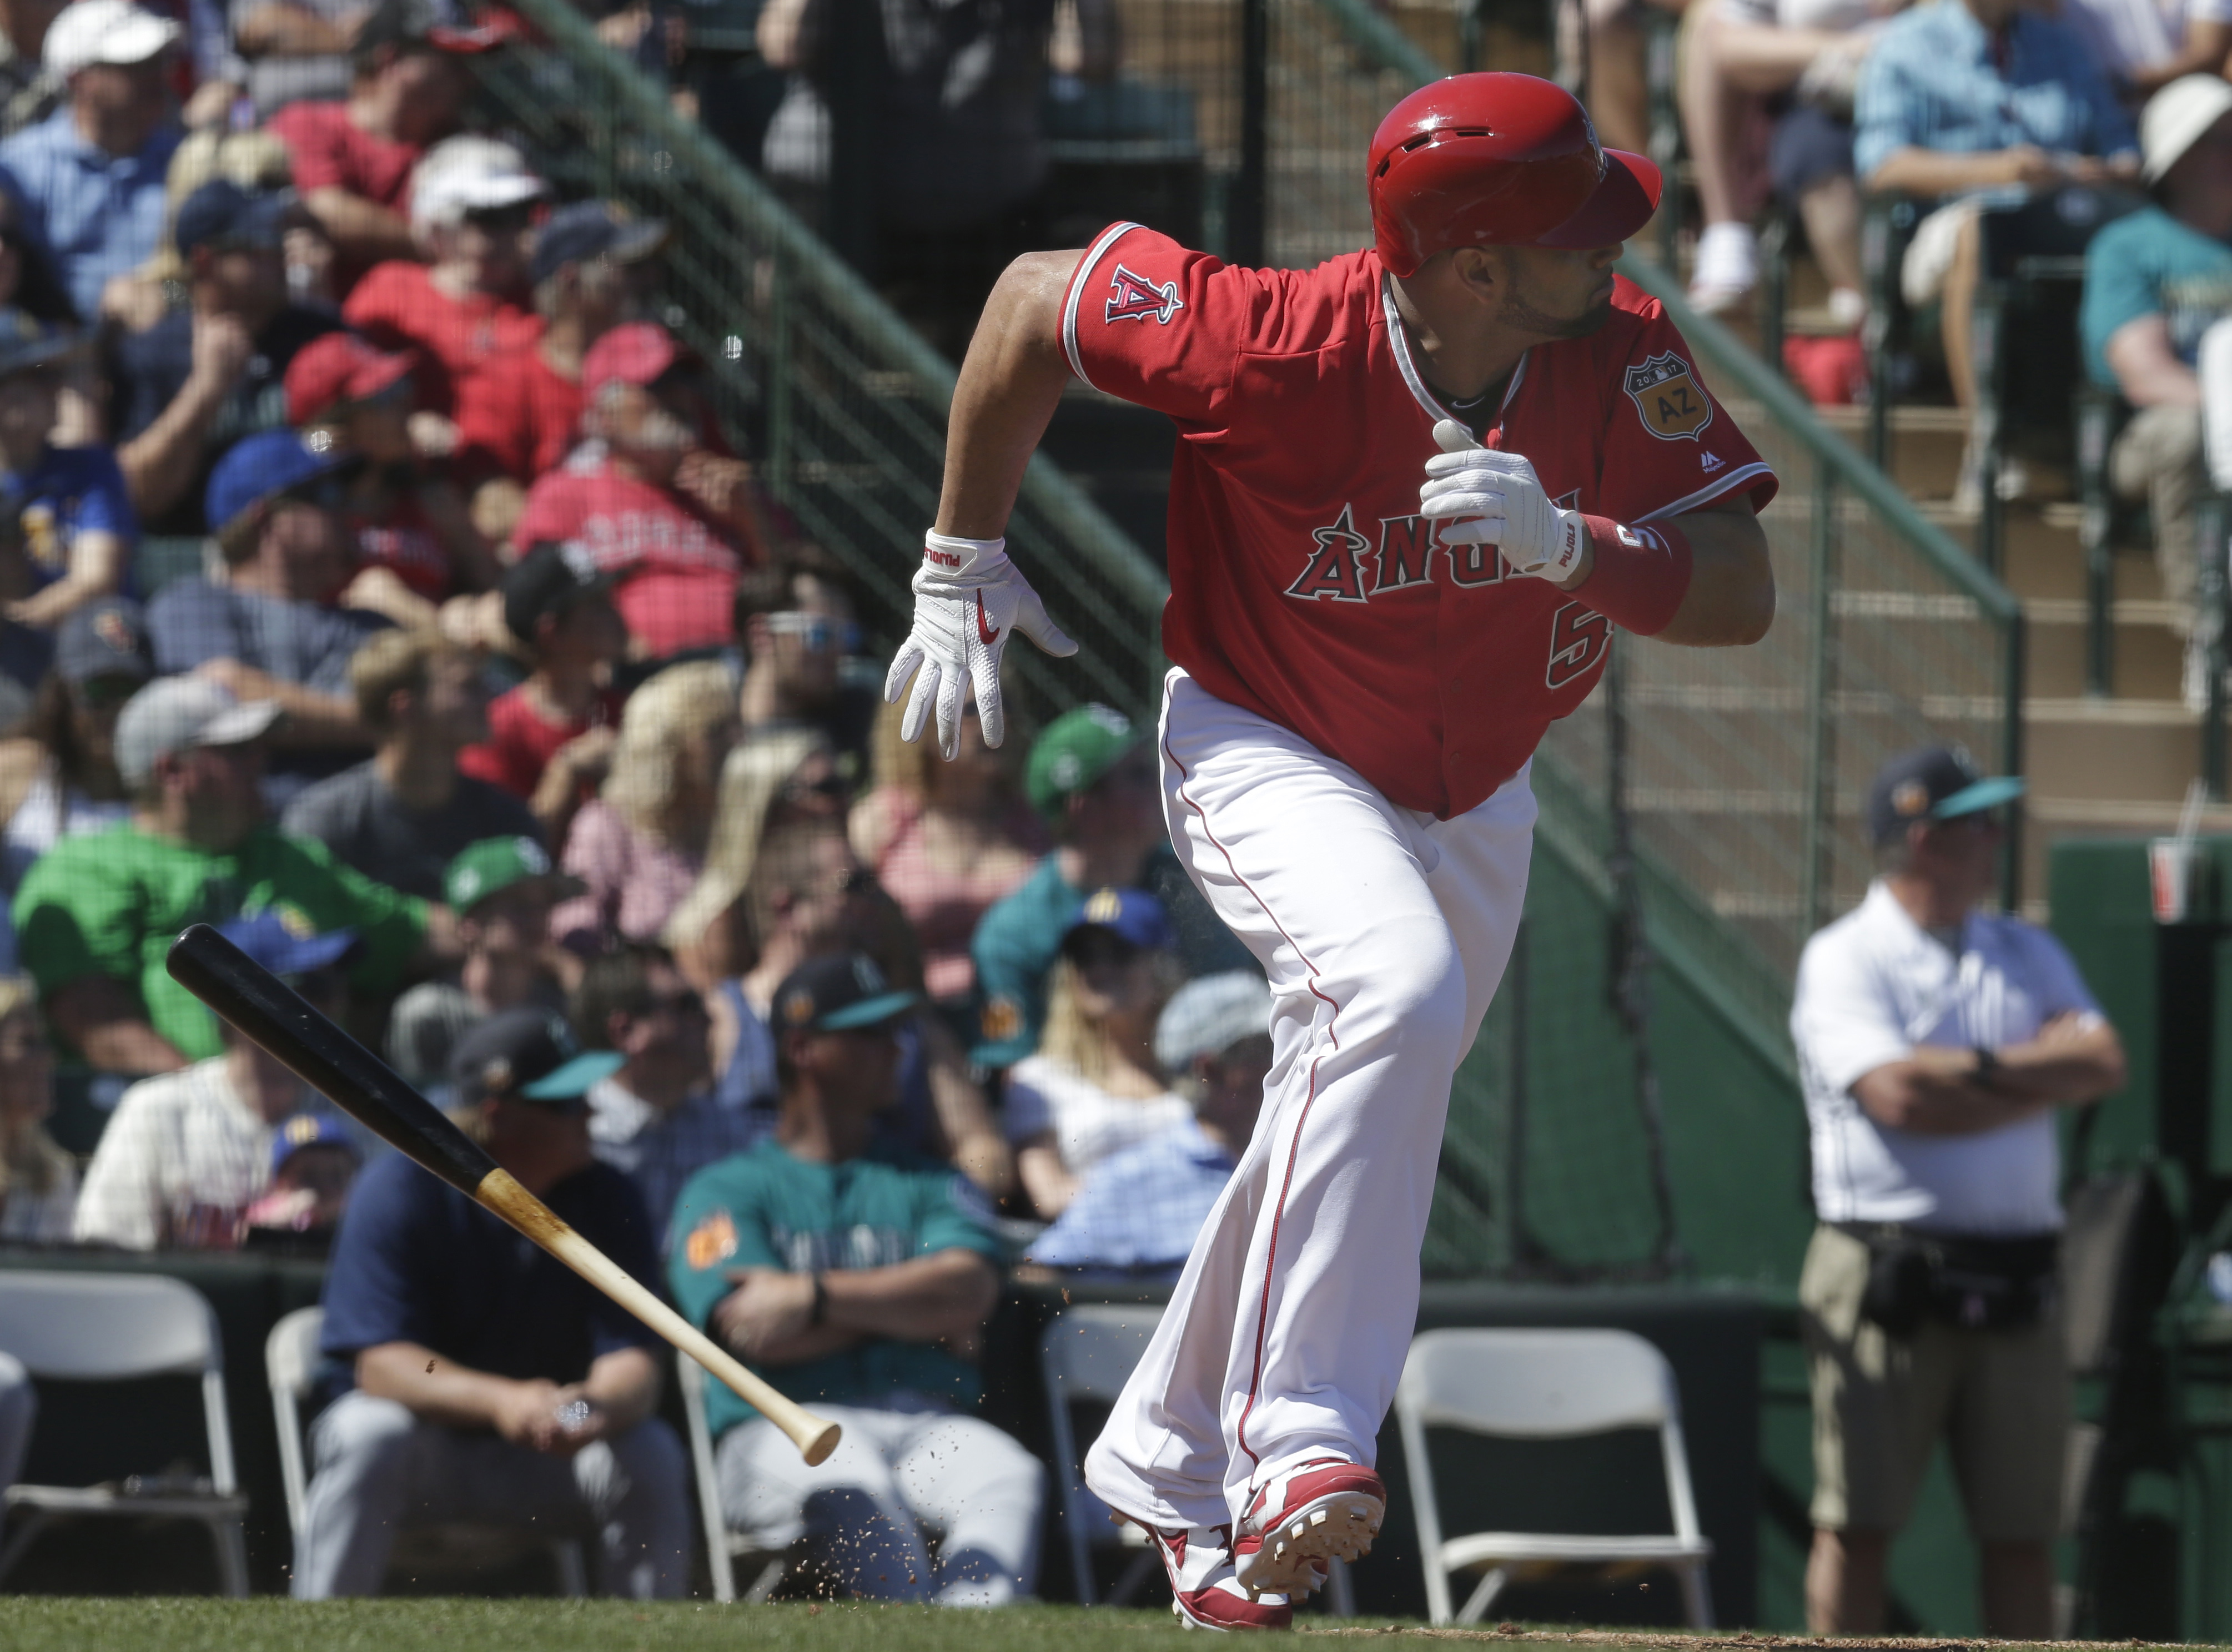 9938233-mlb-spring-training-seattle-mariners-at-los-angeles-angels